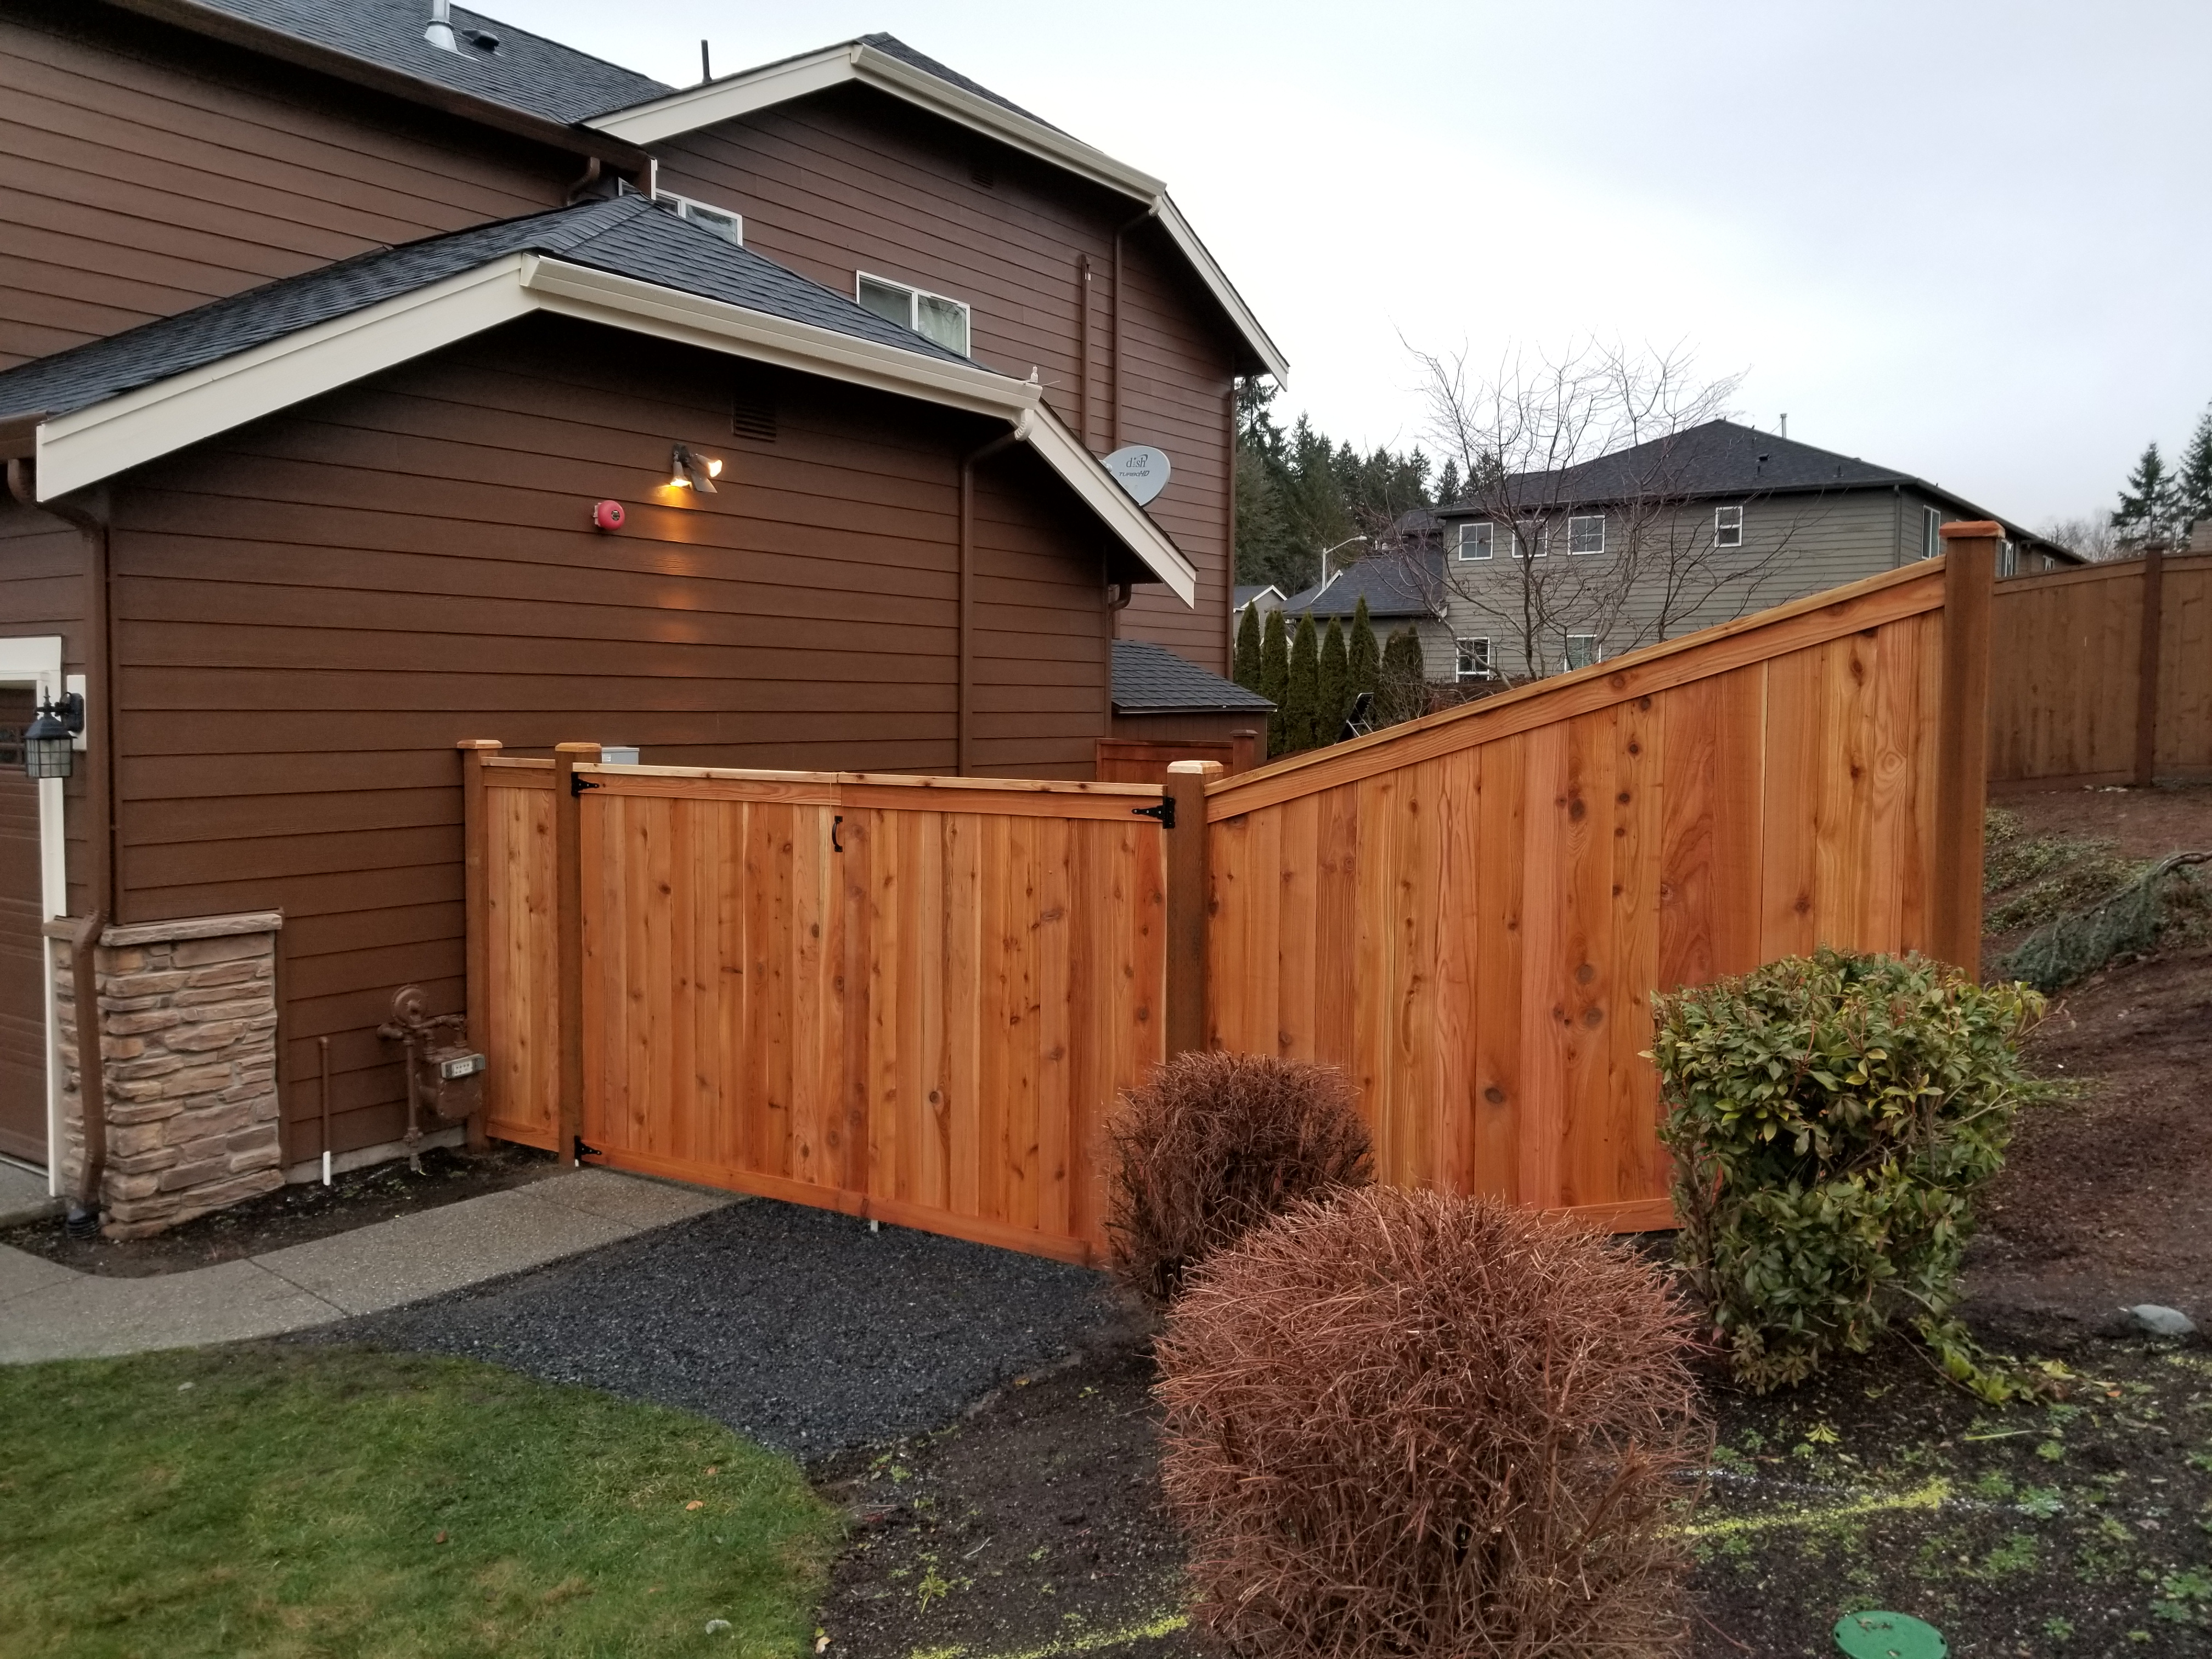 A wooden fence separating the front of a house from the back.